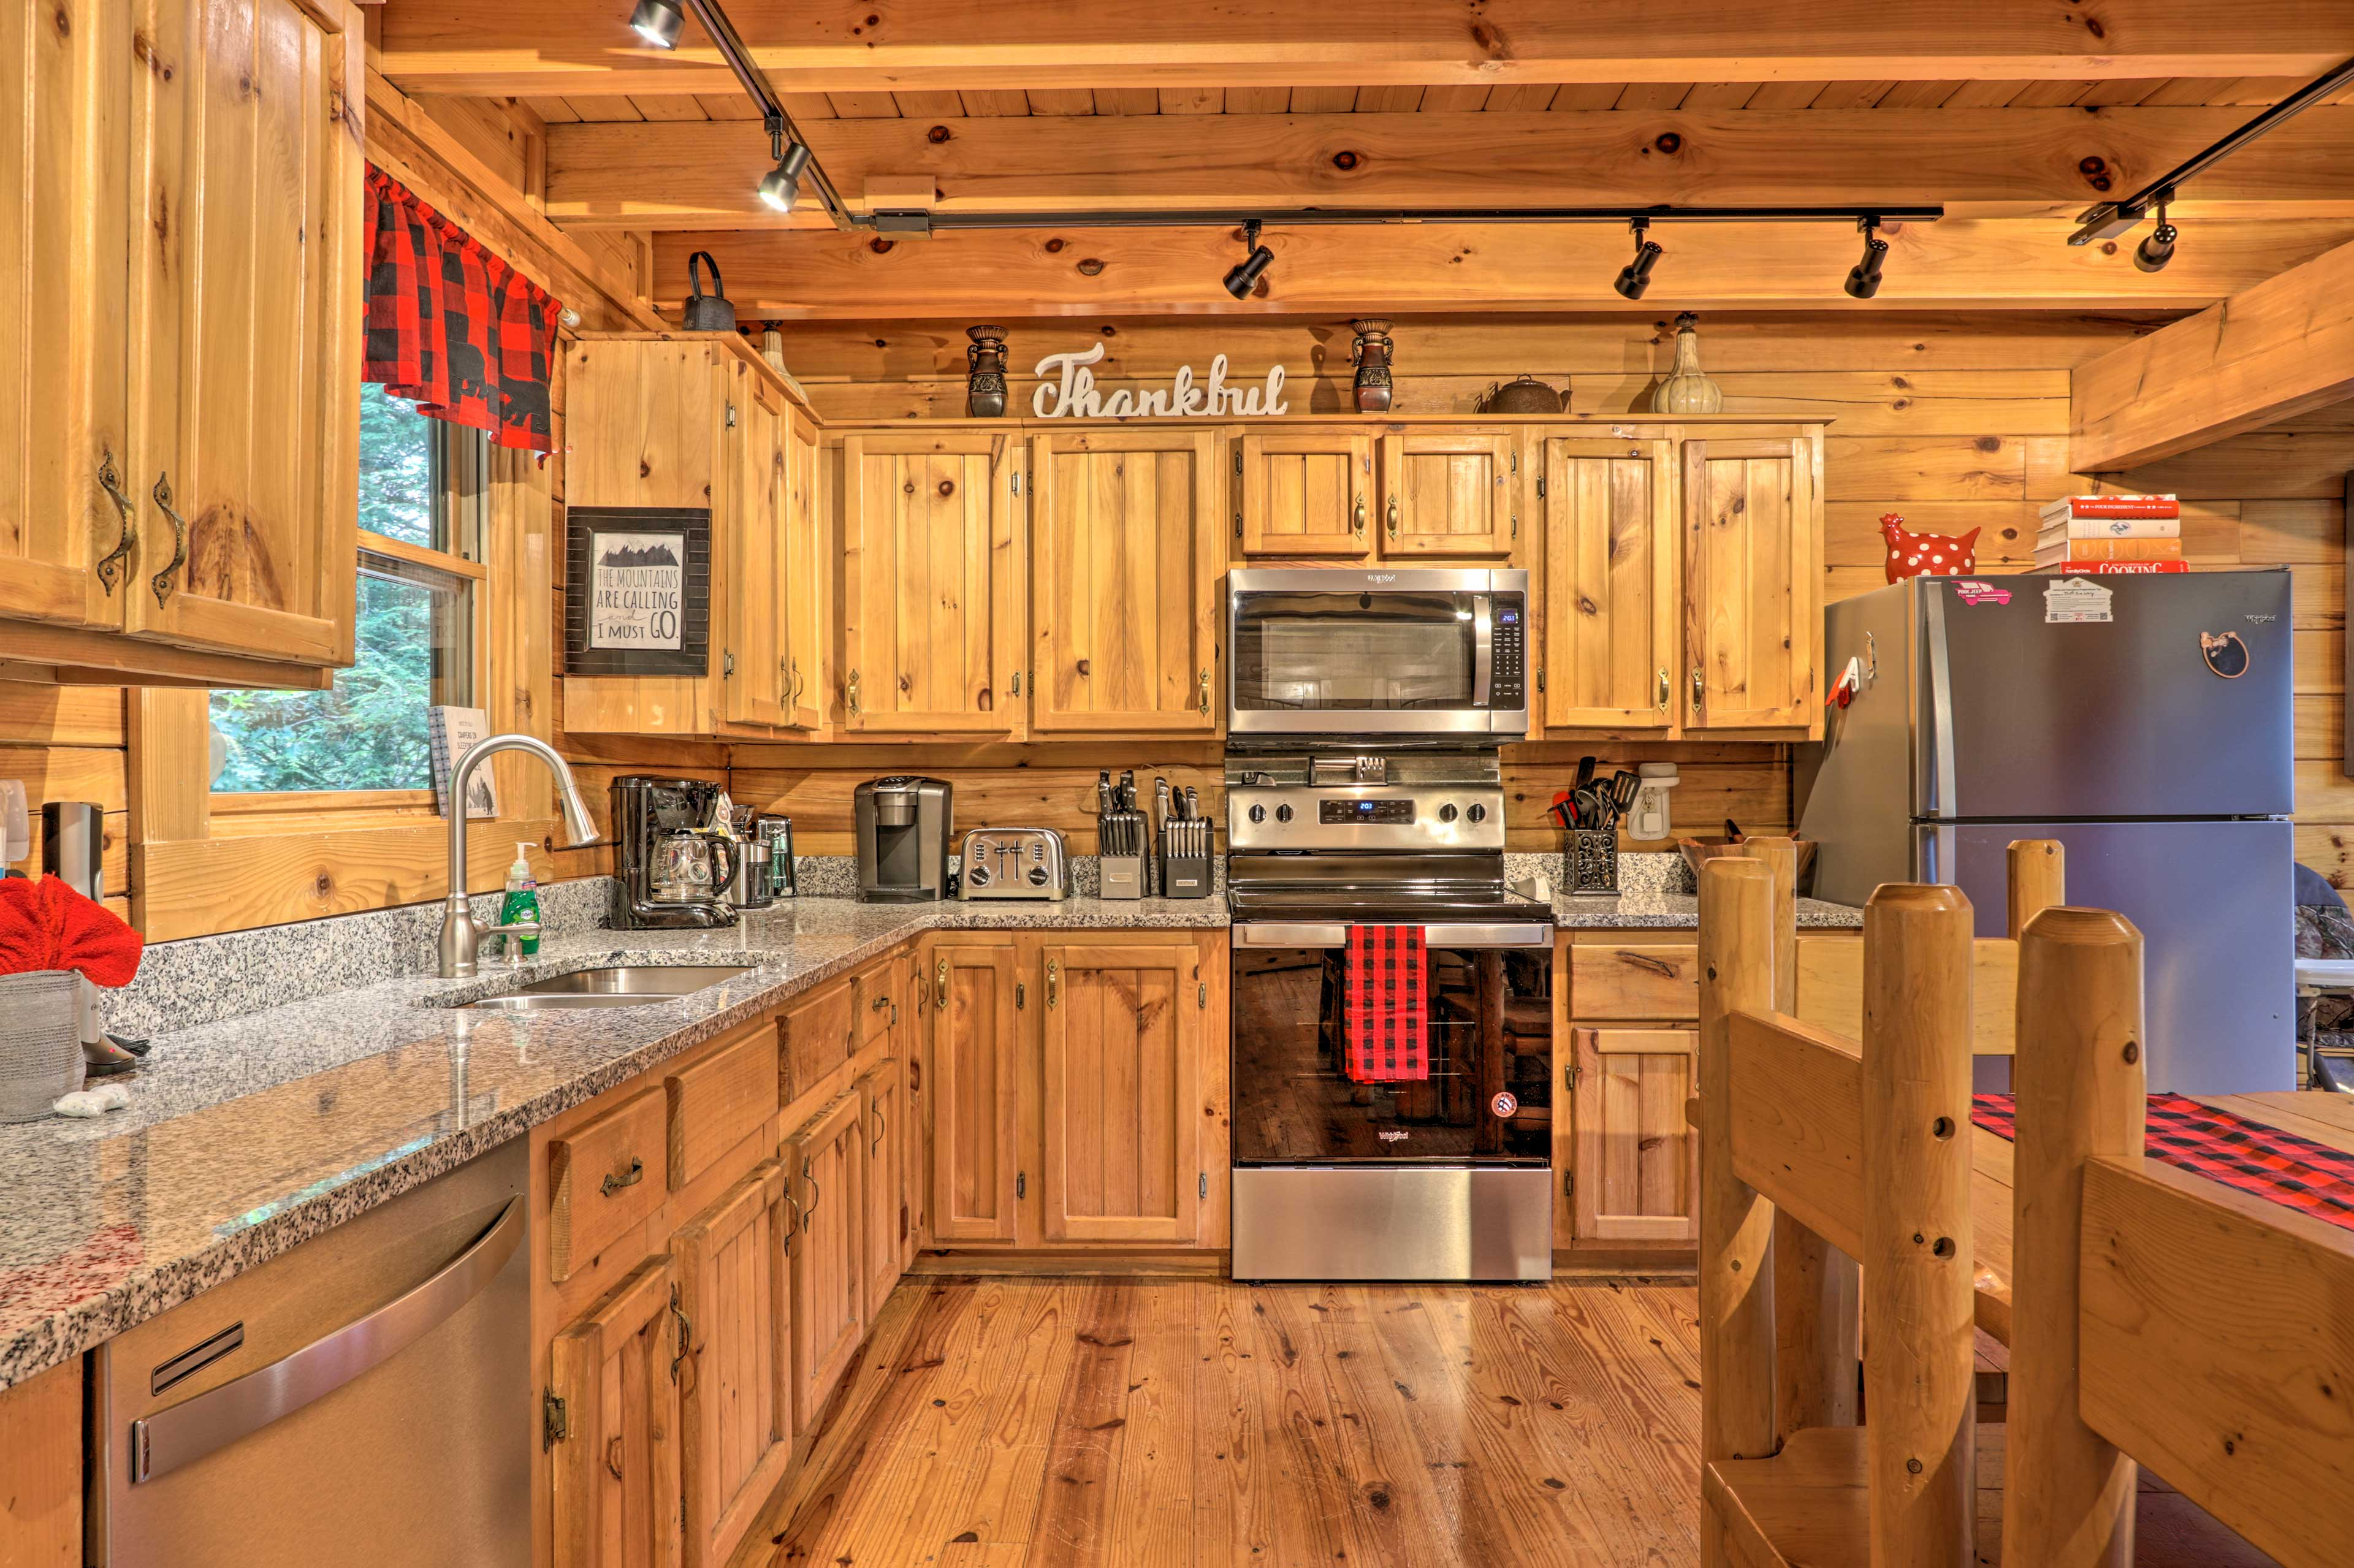 Try out a new recipe in the fully equipped kitchen.